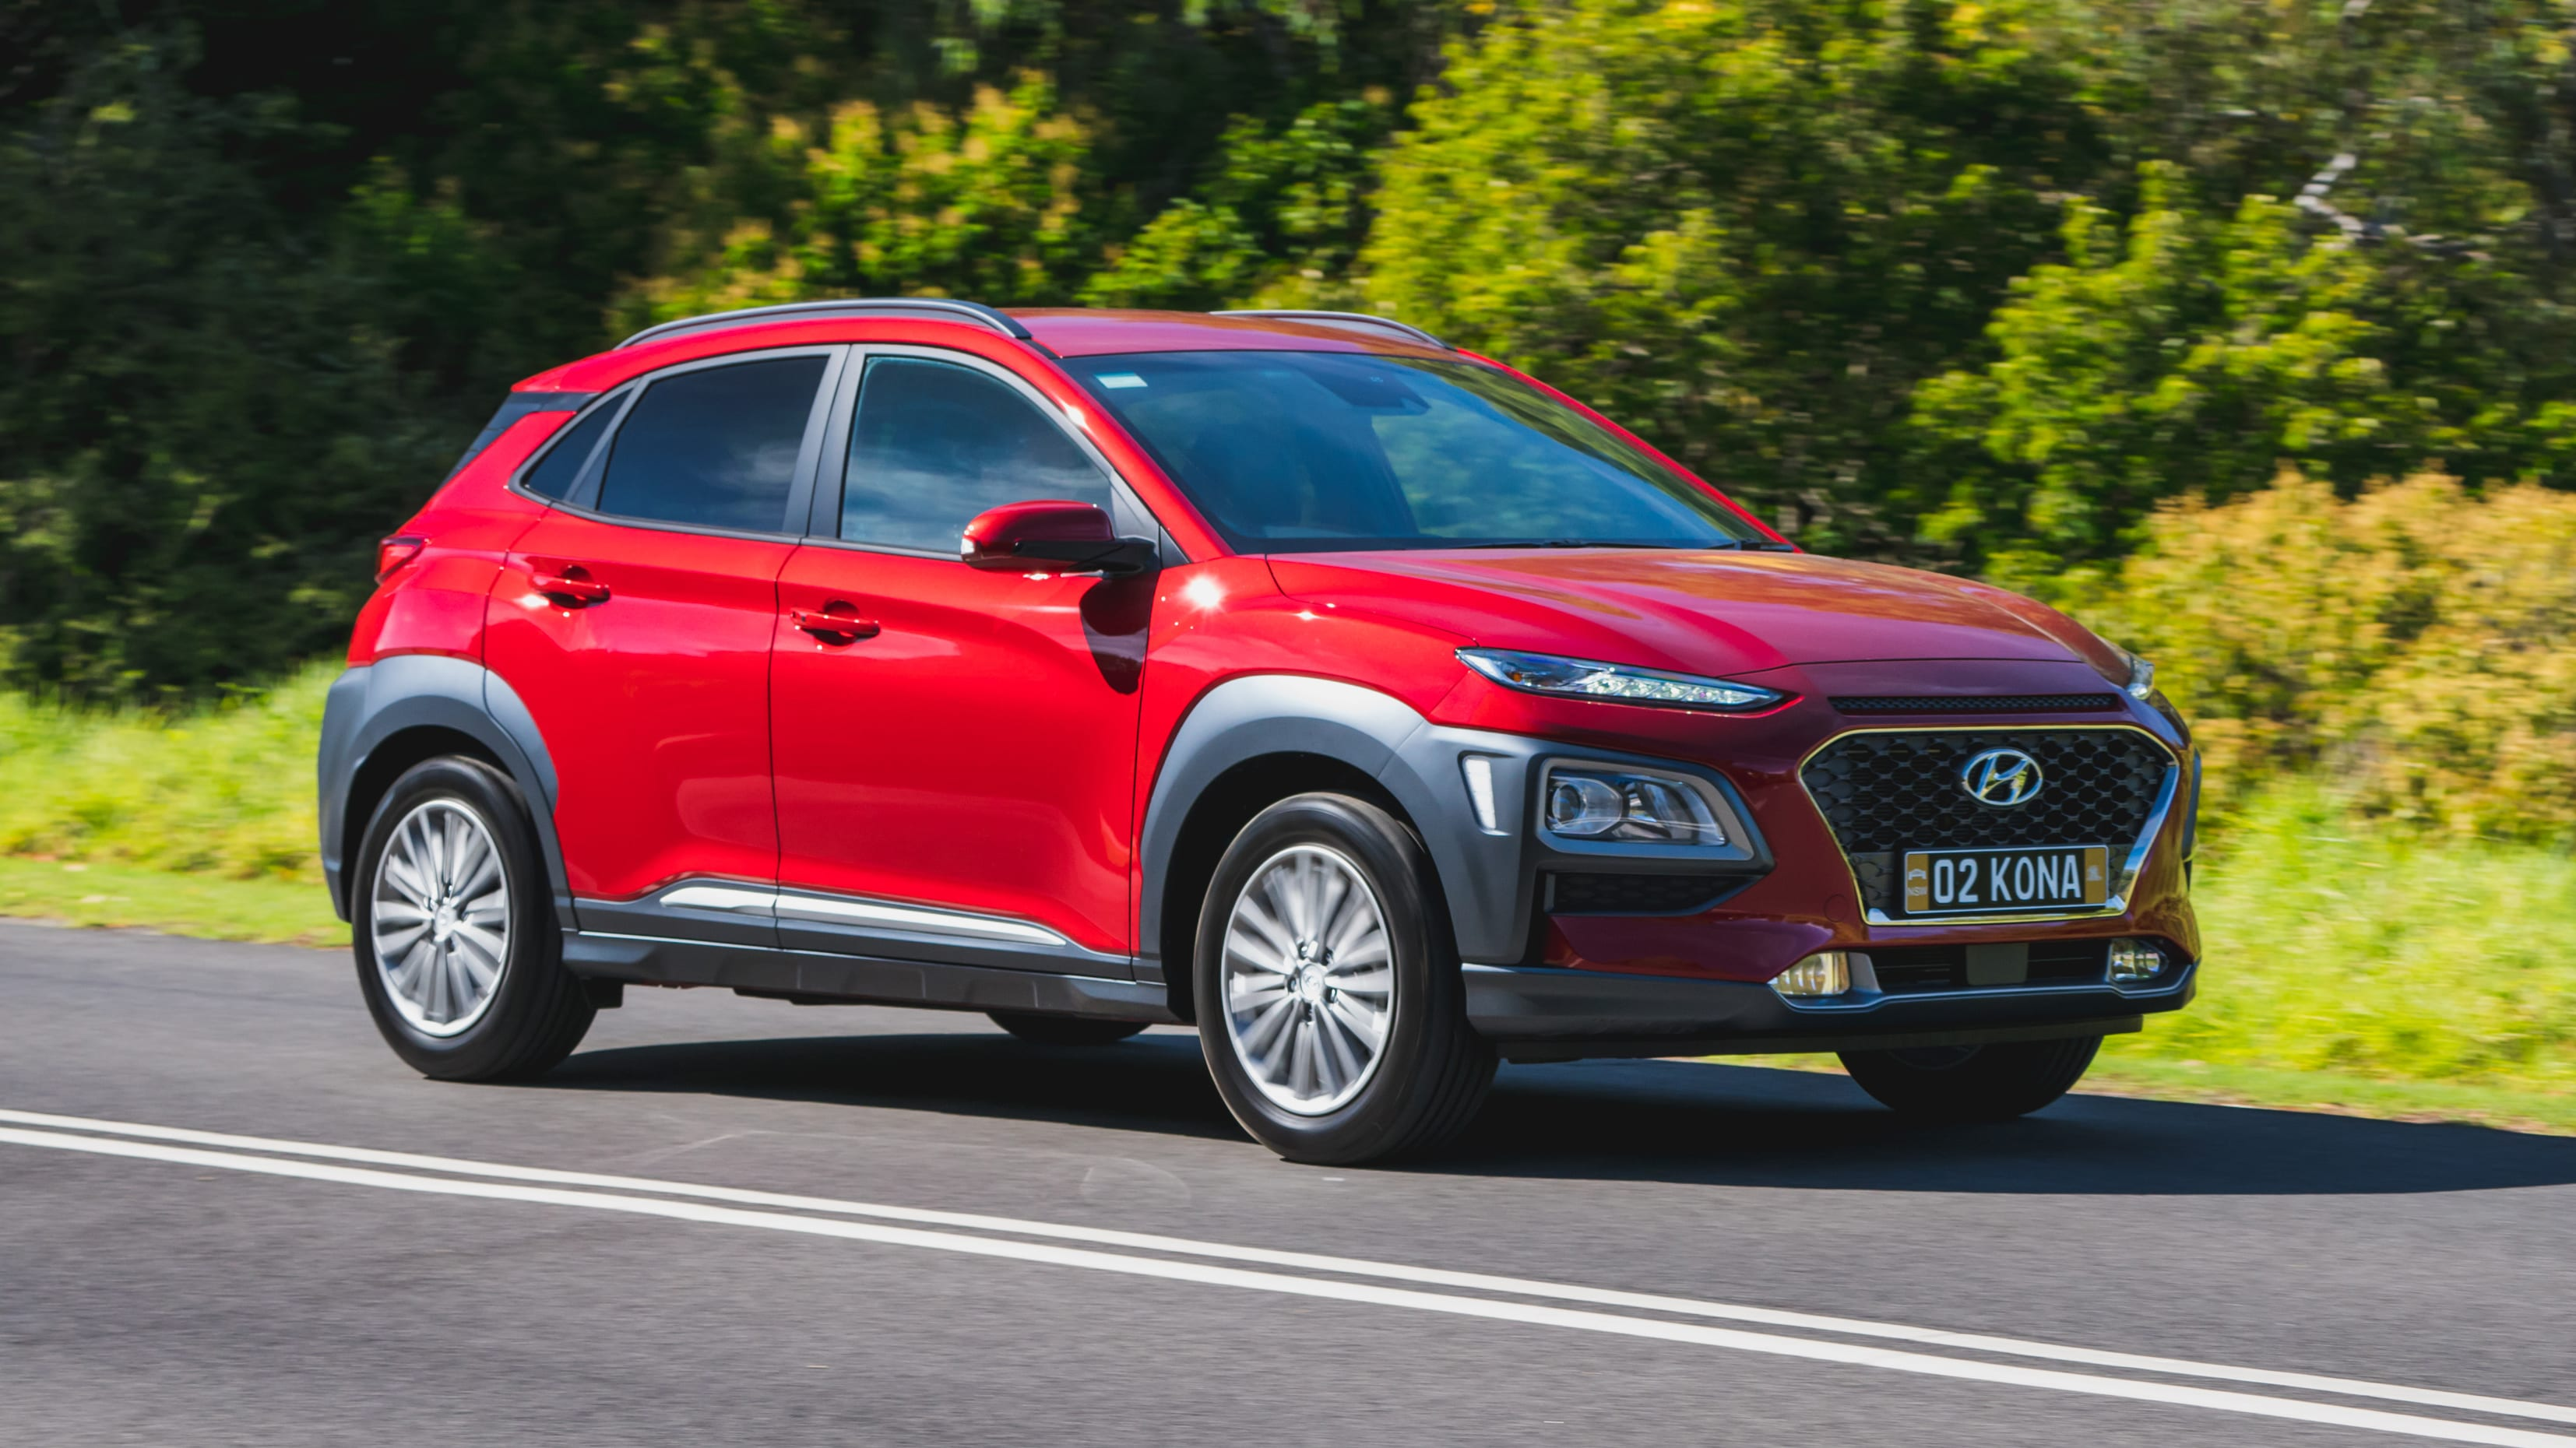 2019 Hyundai Kona Elite review